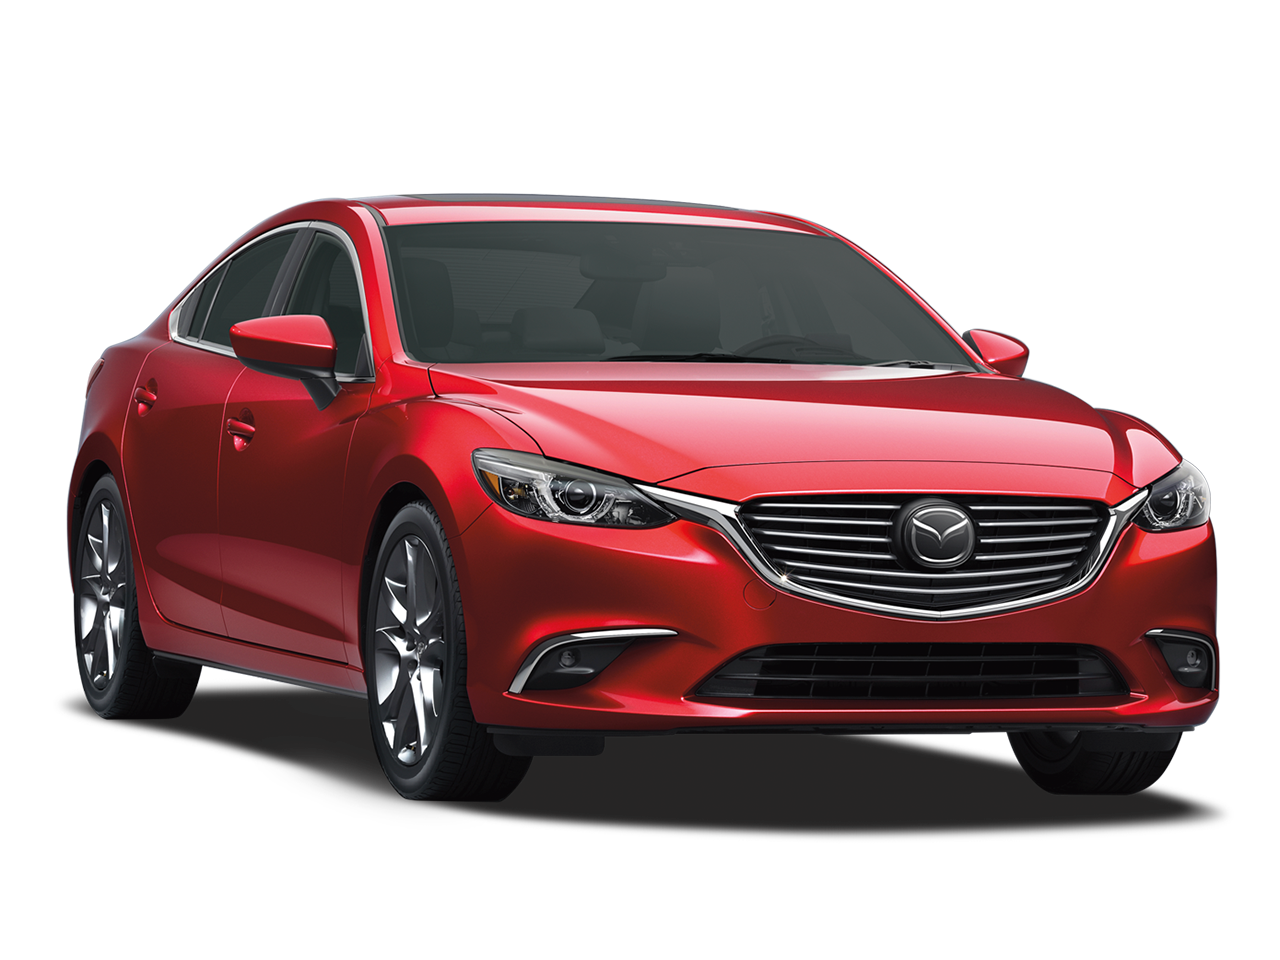 2016 mazda3 4 door vs 2016 nissan sentra romano mazda. Black Bedroom Furniture Sets. Home Design Ideas